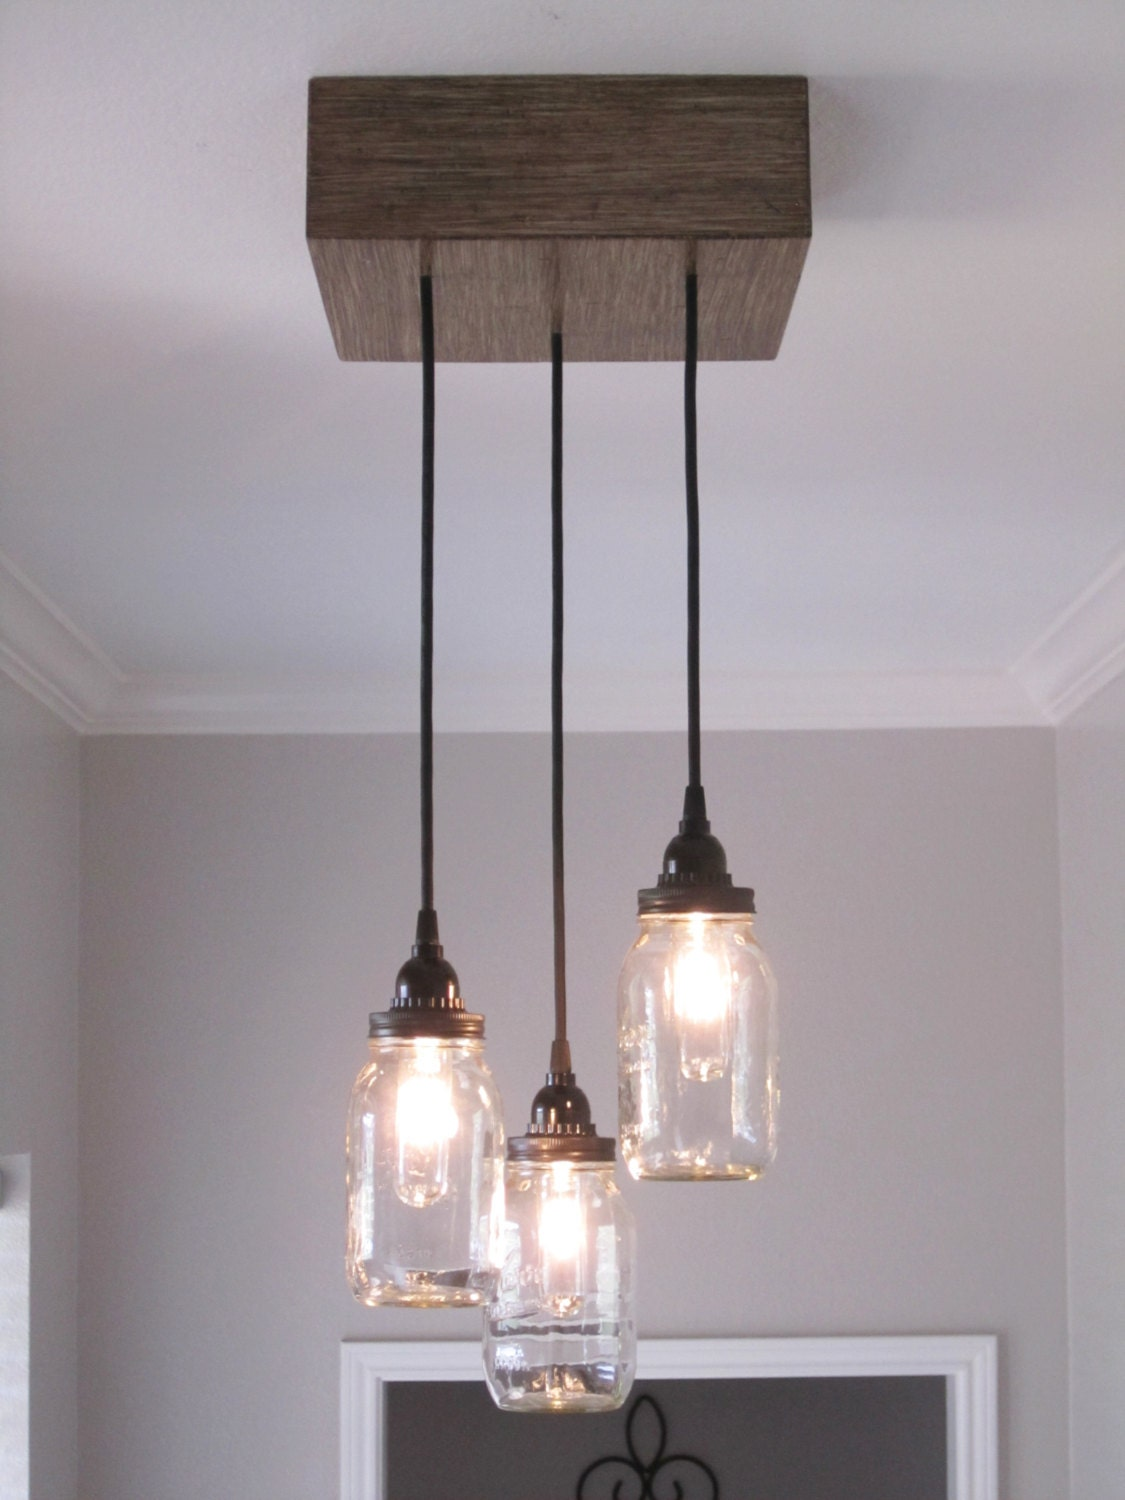 Rustic Mason Jar Chandelier Lighting Ceiling Light Rustic